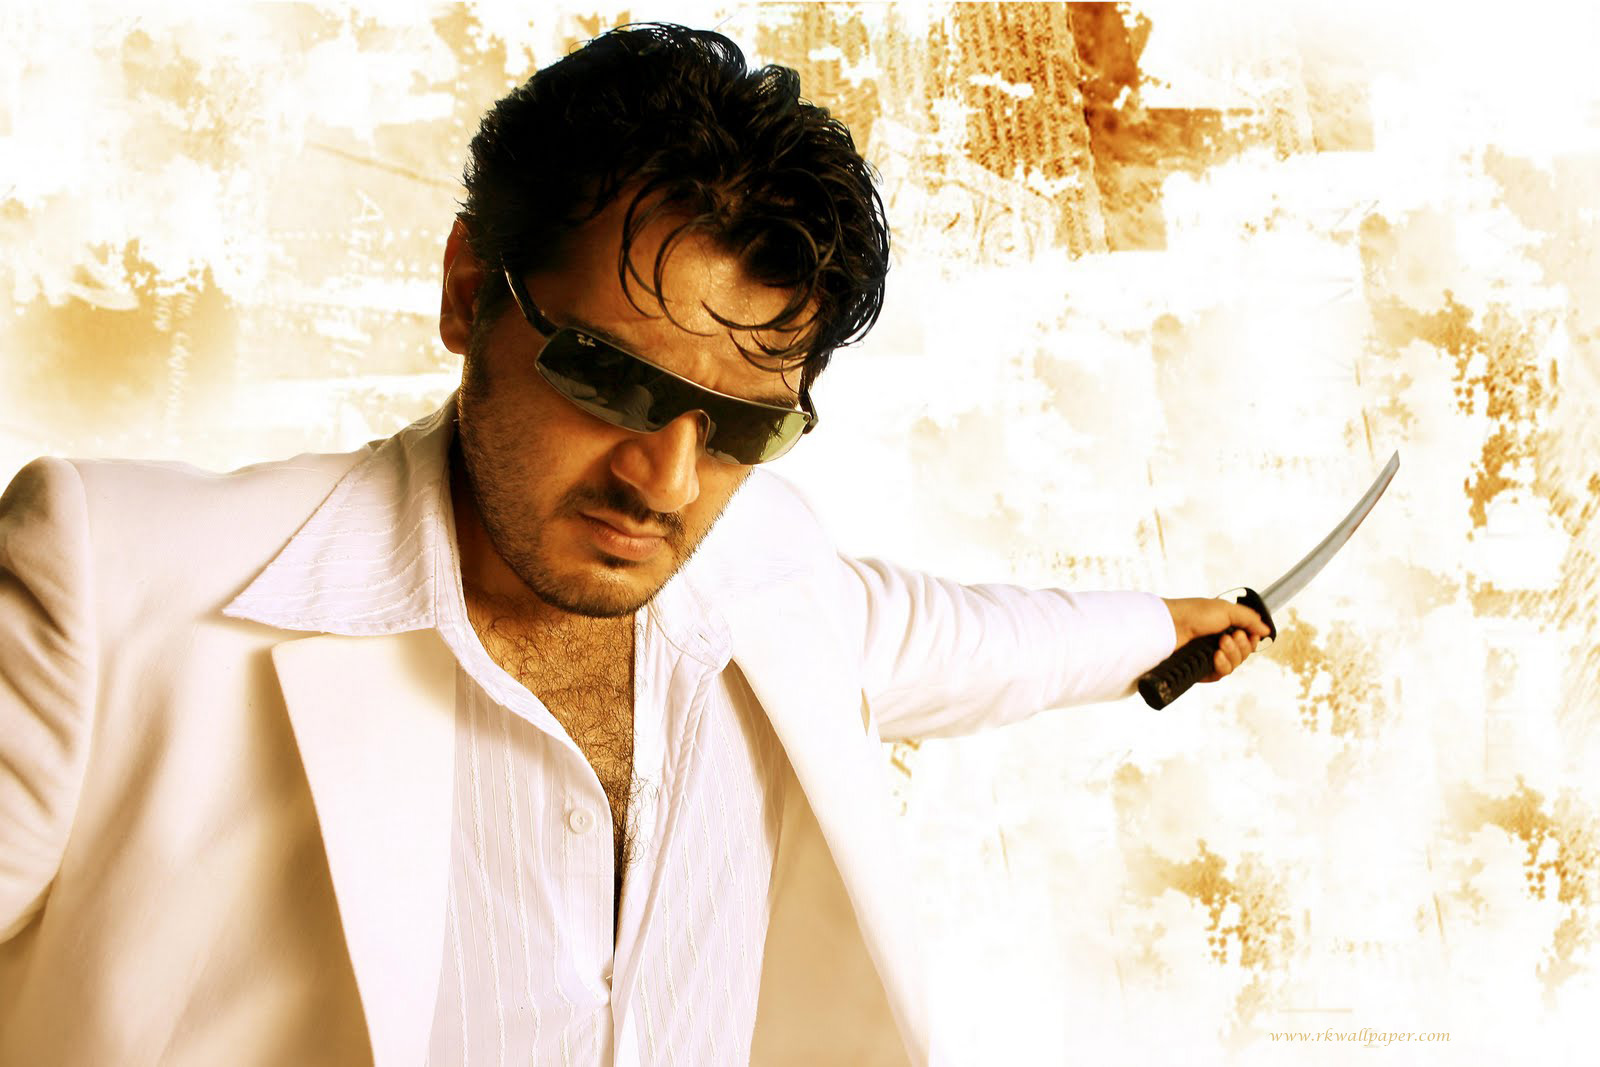 download hd thala ajith fantastic amazing look in billa mobile desktop wallpaper mass free pic